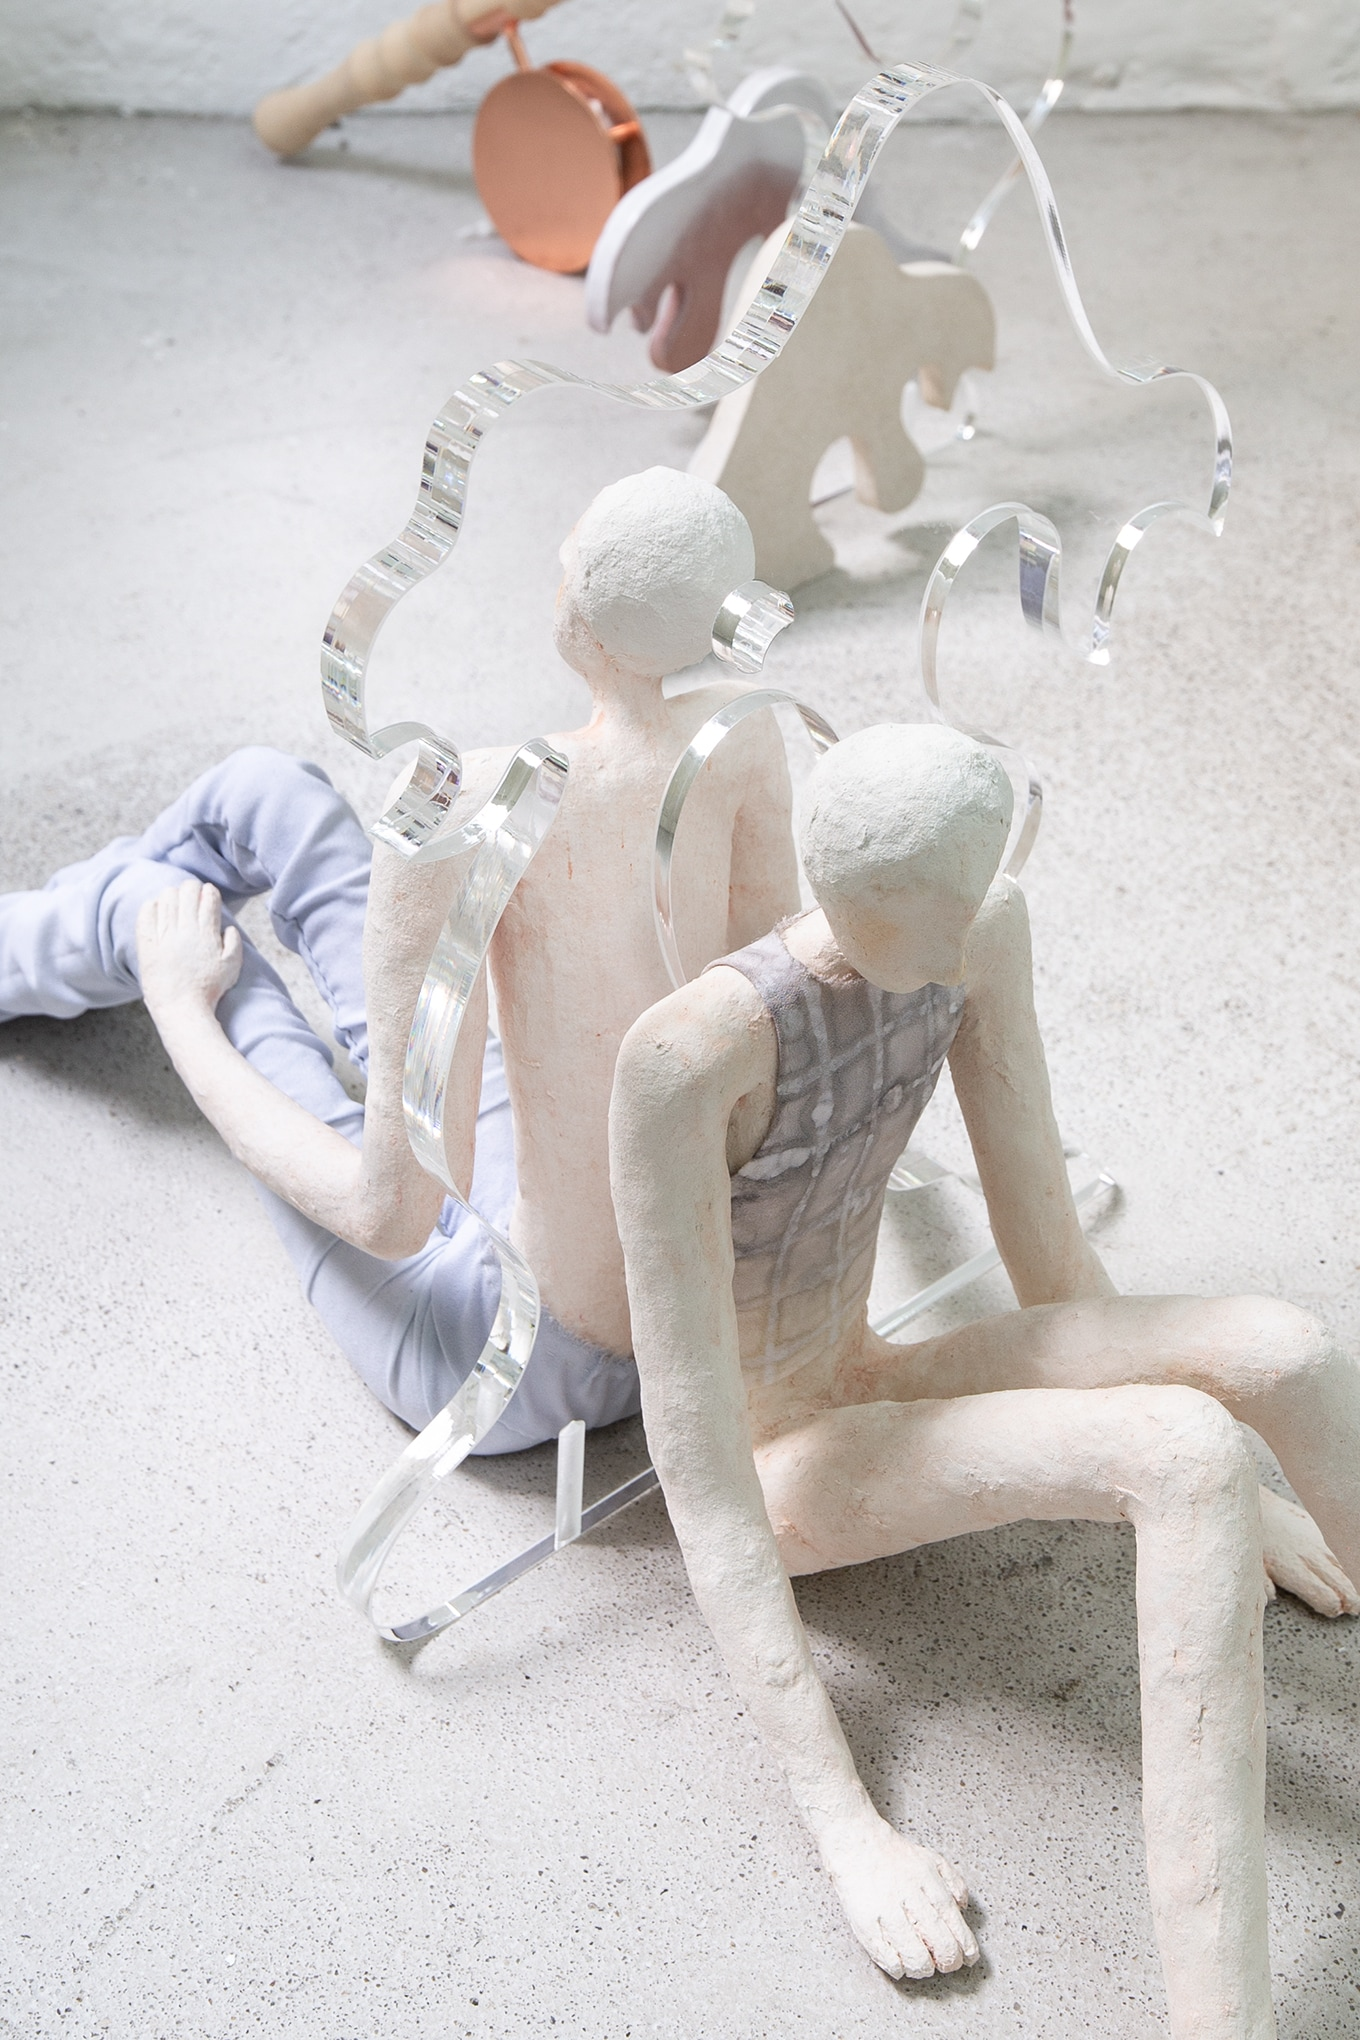 Chiara Bals & Jumpei Shimada, guided by the will to forget (detail), 2021